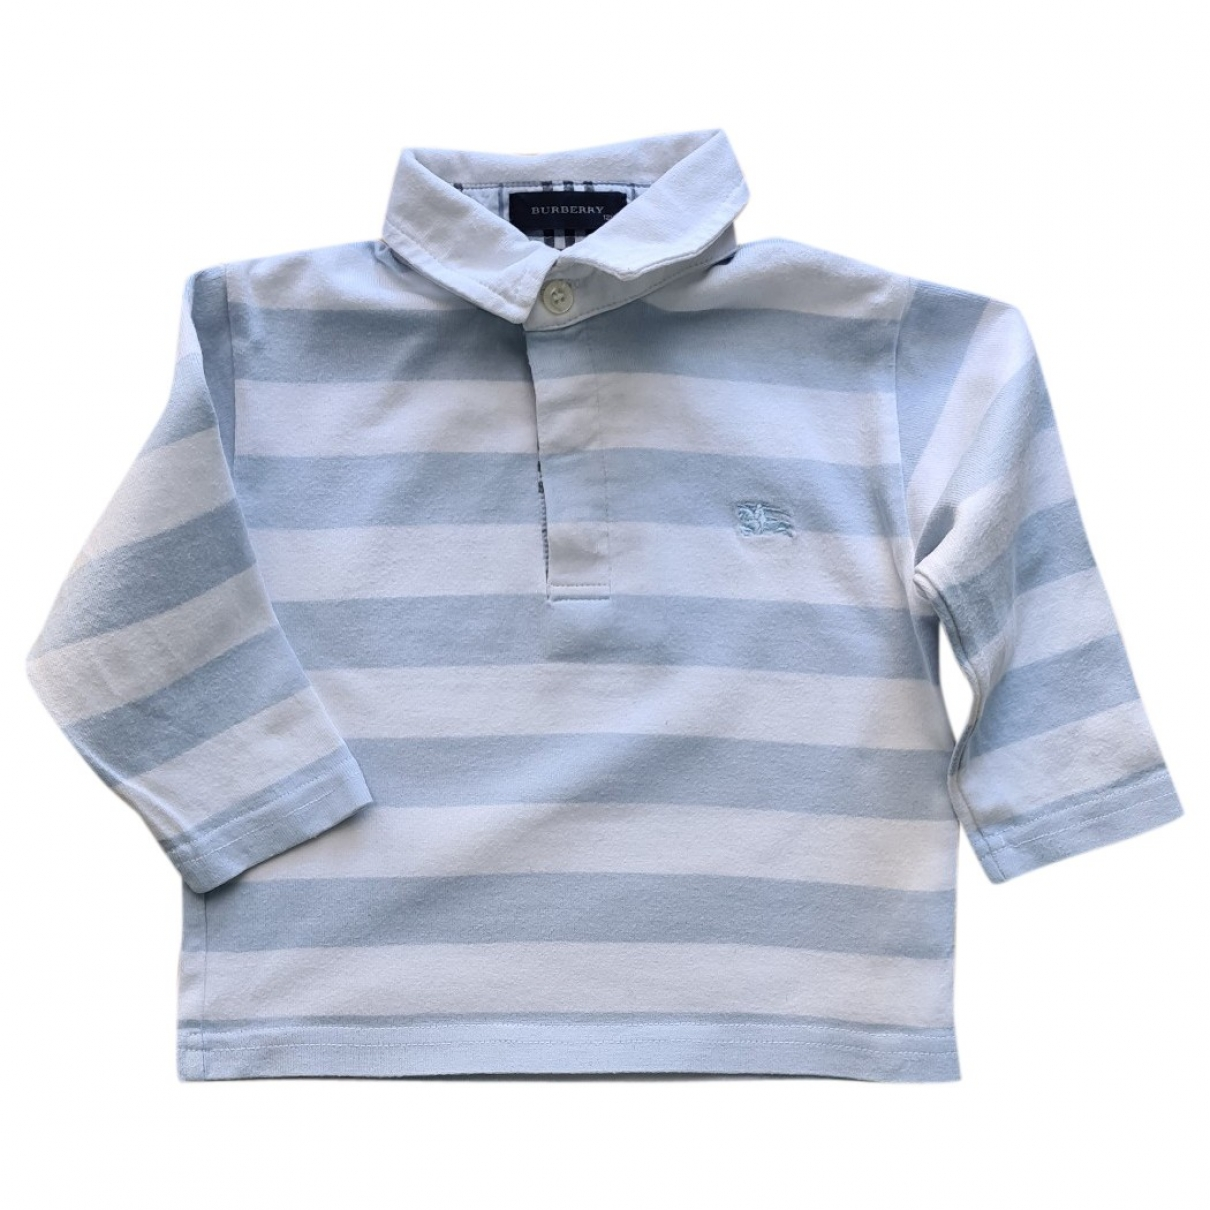 Burberry \N Multicolour Cotton  top for Kids 12 months - up to 74cm FR